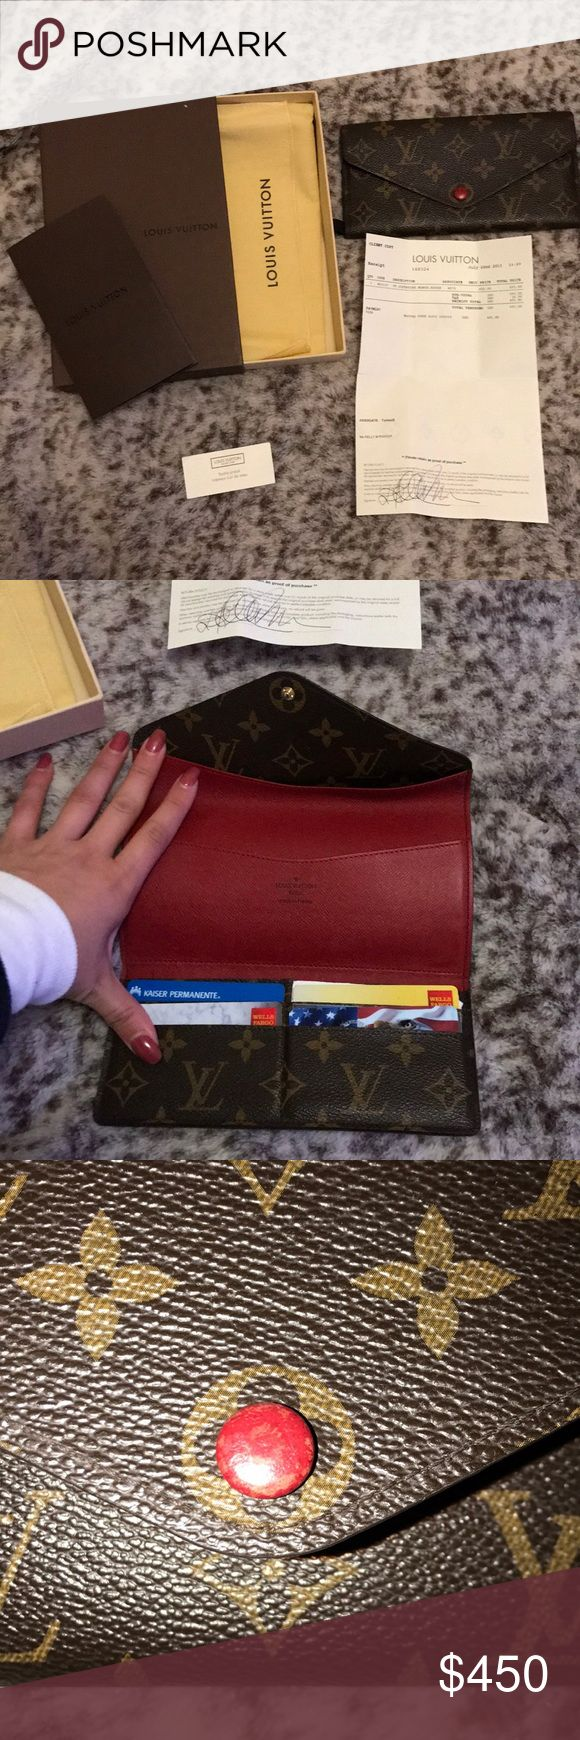 Louis Vuitton Wallet 2013 Authentic Louis Vuitton Wallet  Come with dustbag, box, Wallet, and receipt  Does not come with the coin pouchette  Little wear on the button  Good used condition Firm price Louis Vuitton Bags Wallets